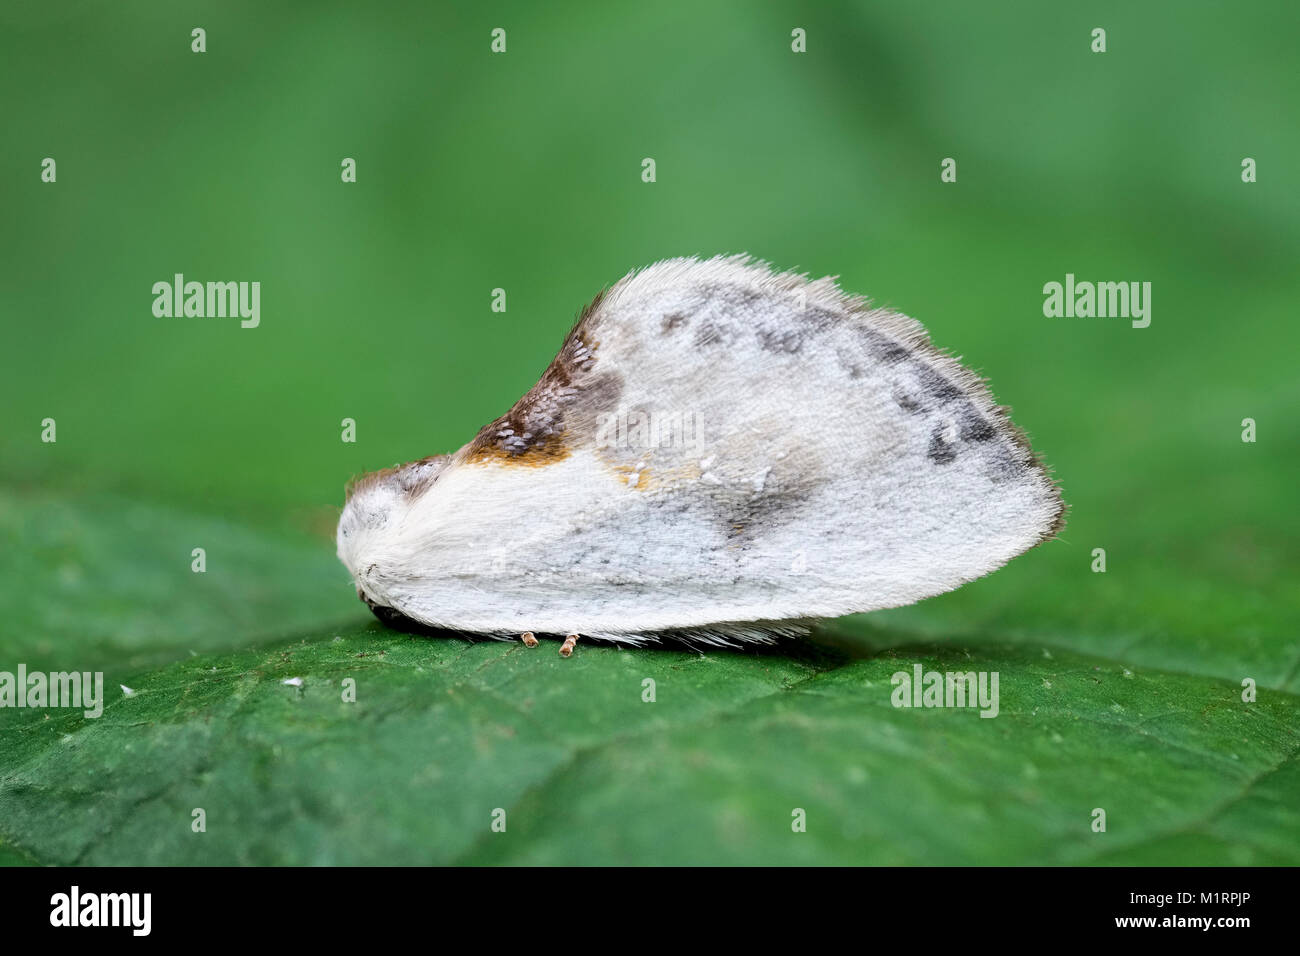 Chinese character moth camouflaged as a bird dropping in full view on leaf -  Cilix glaucata - Stock Image